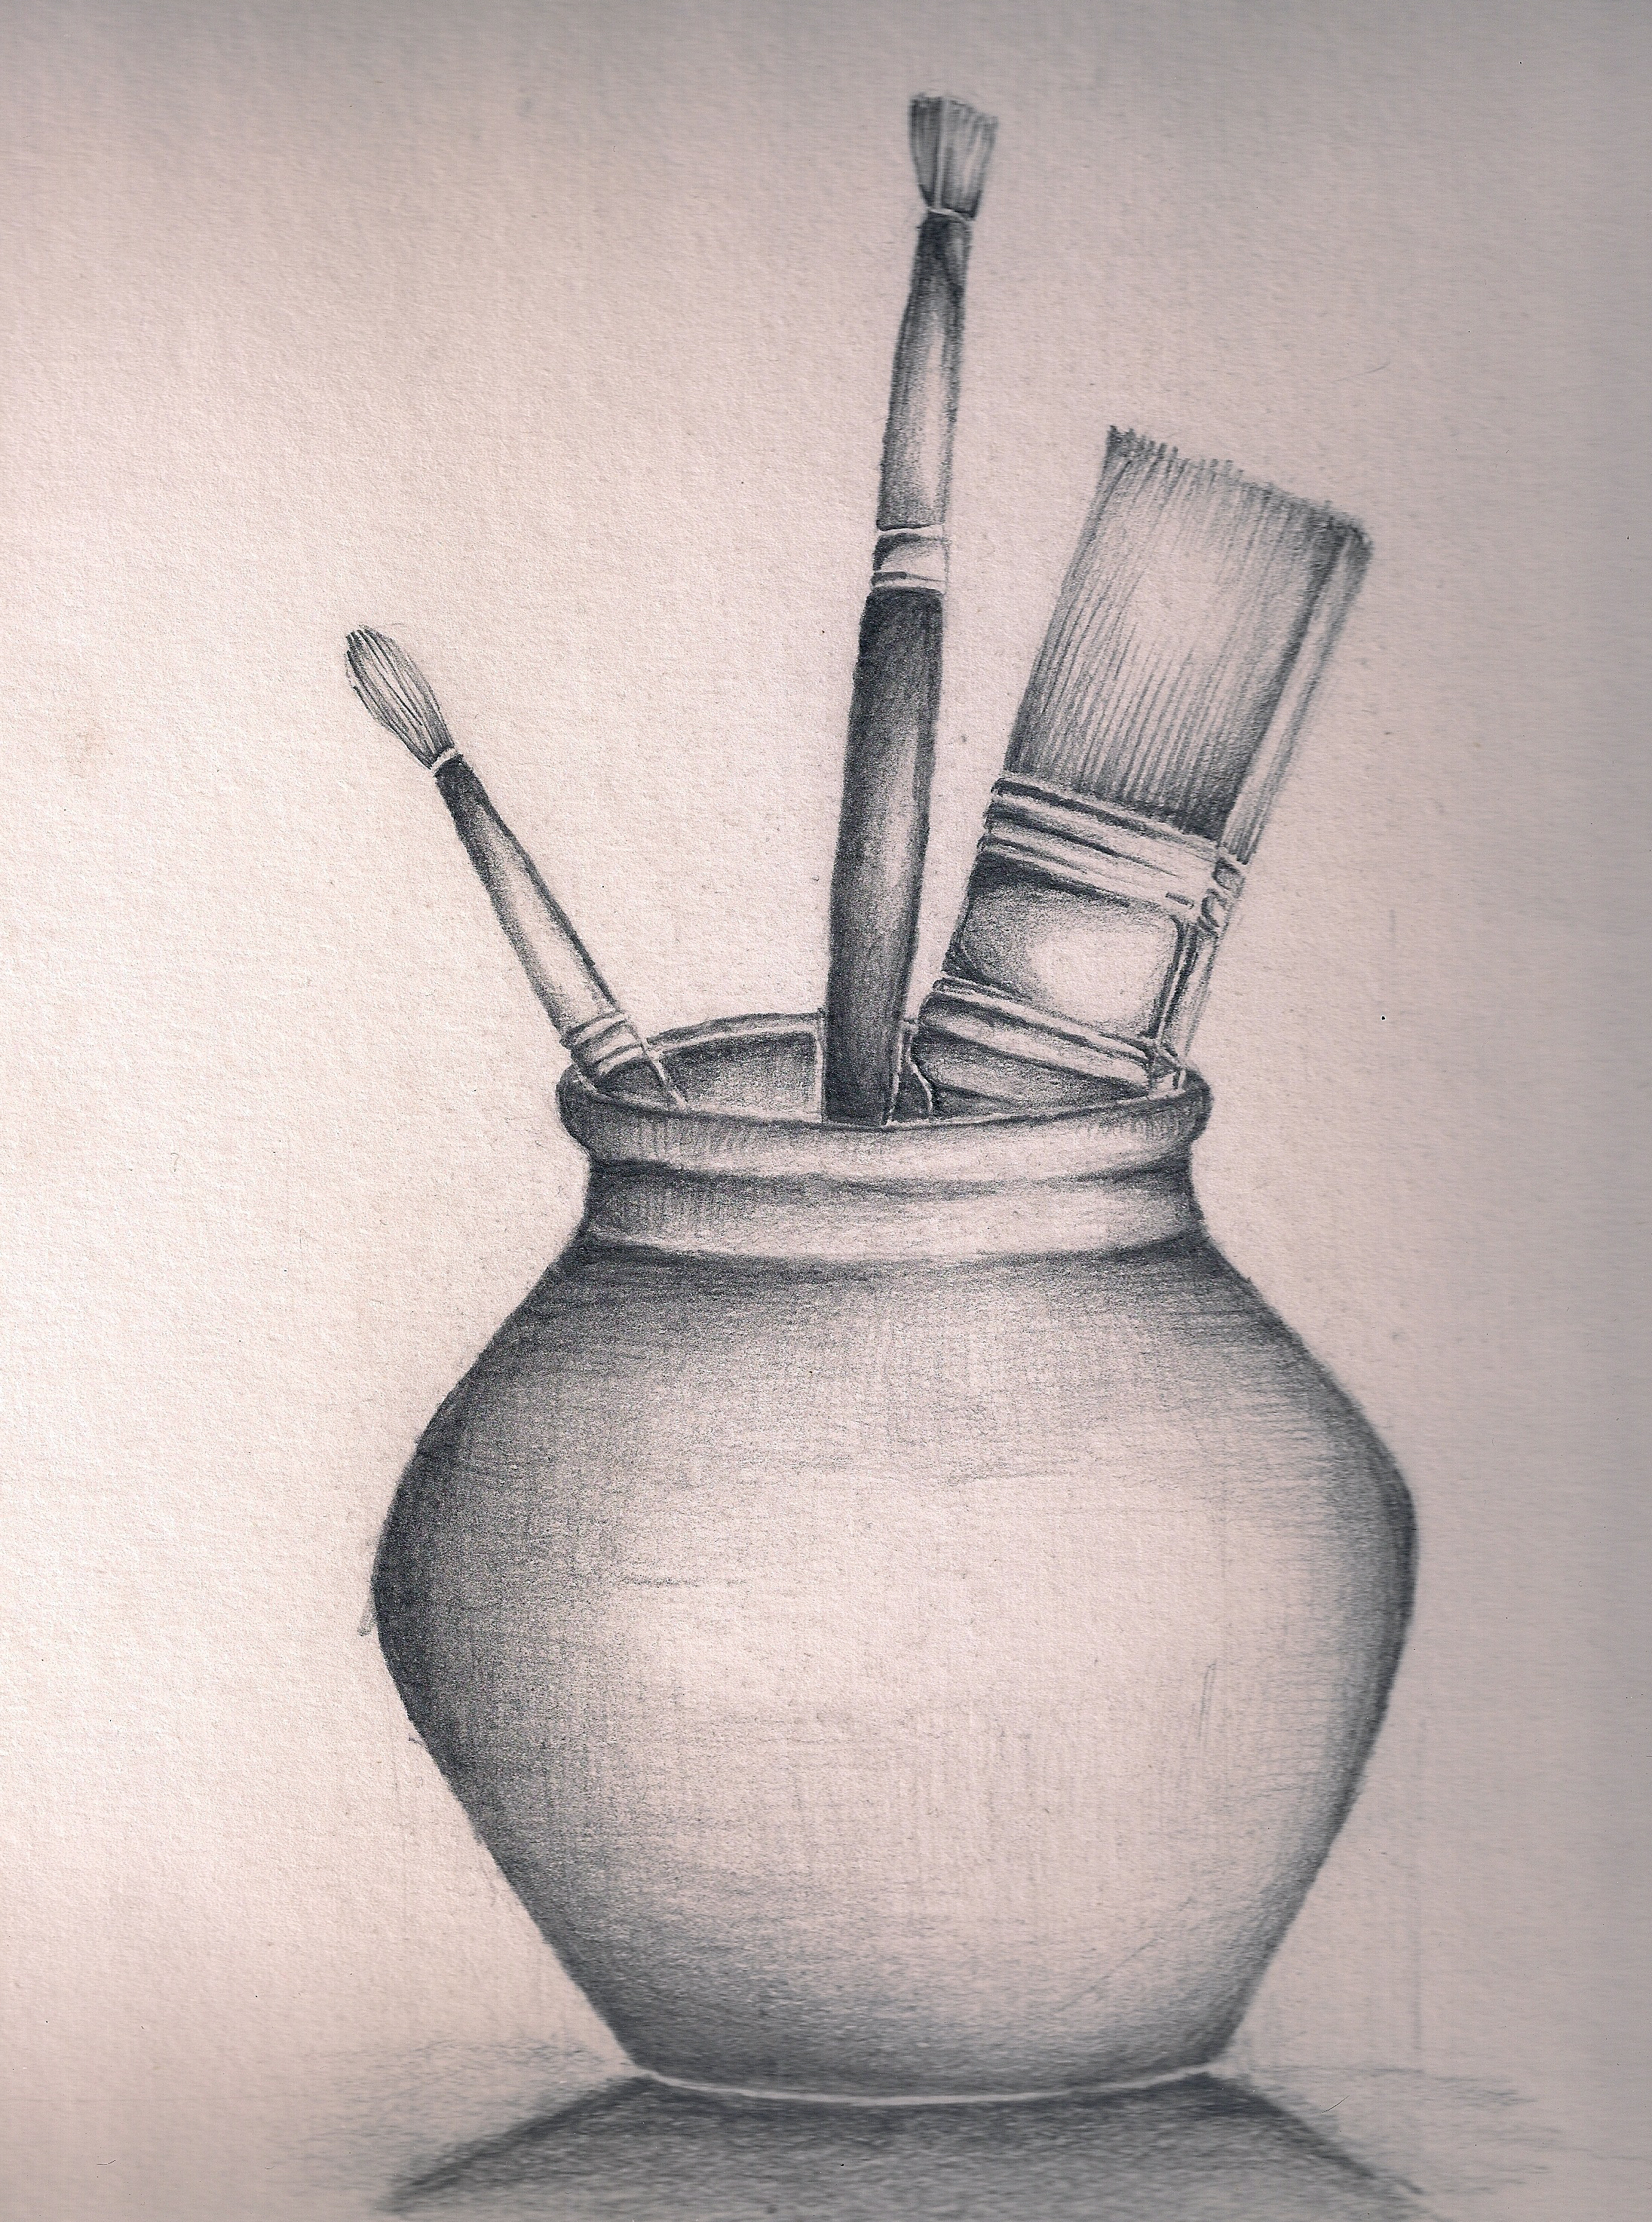 2191x2947 Shading Still Life Pictures Pencil Shading Drawing For Still Life